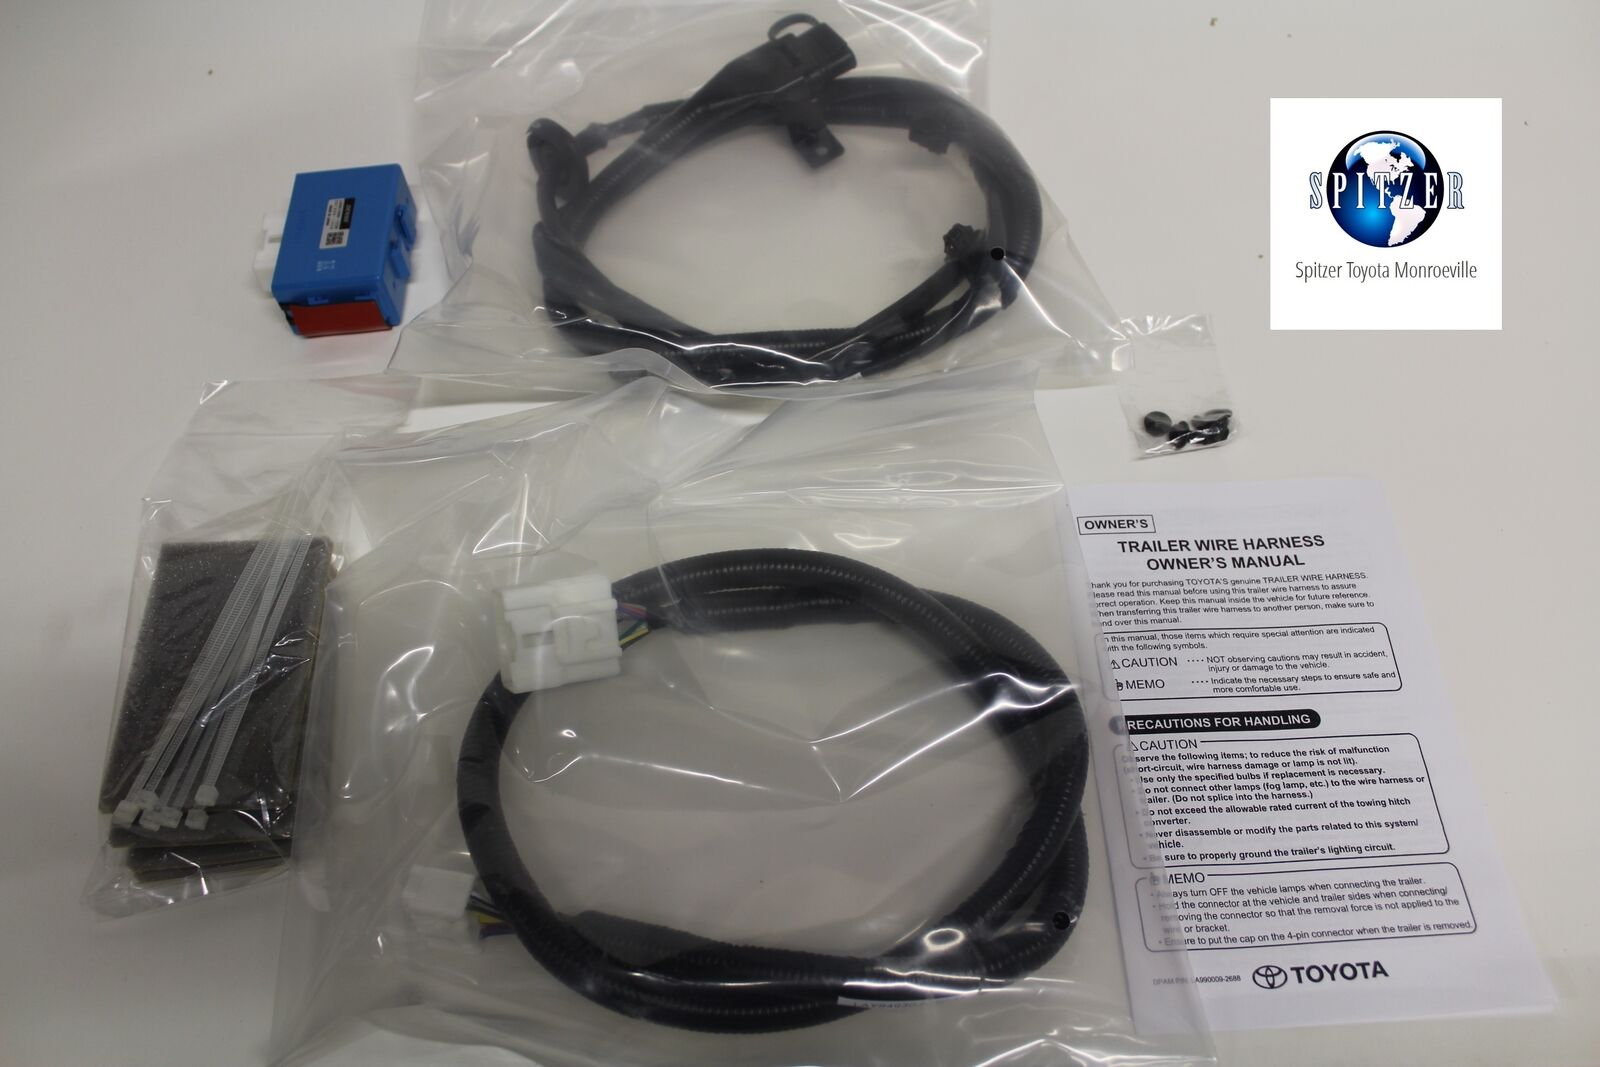 Toyota Genuine Pt725 48140 Towing Wire Harness